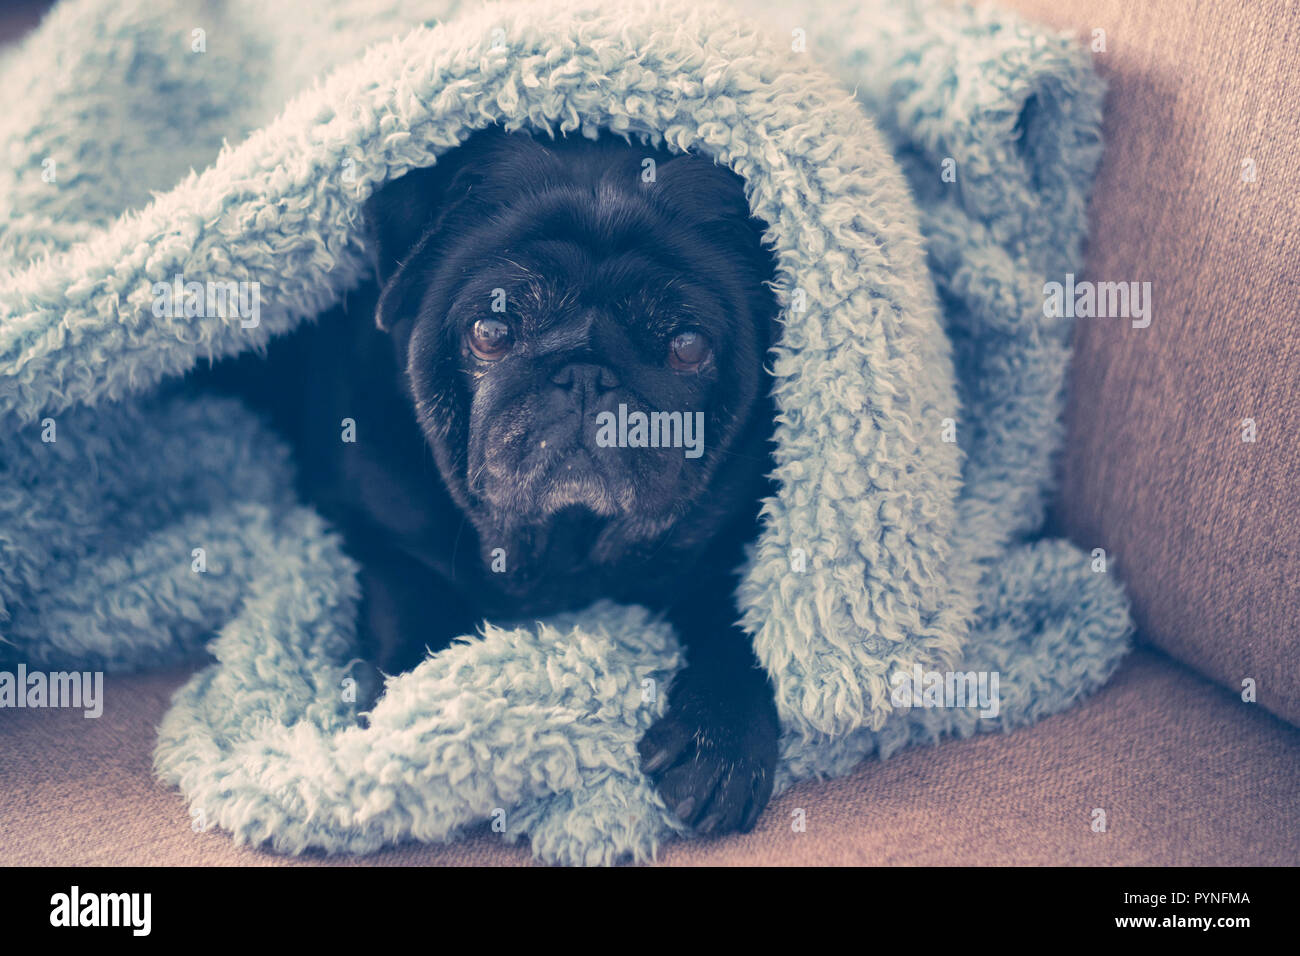 Beautiful and nice pug puppy dog at home protected froma blue sheet, lay down on the sofa to enjoy home with his family and owners. Pet Therapy with l - Stock Image